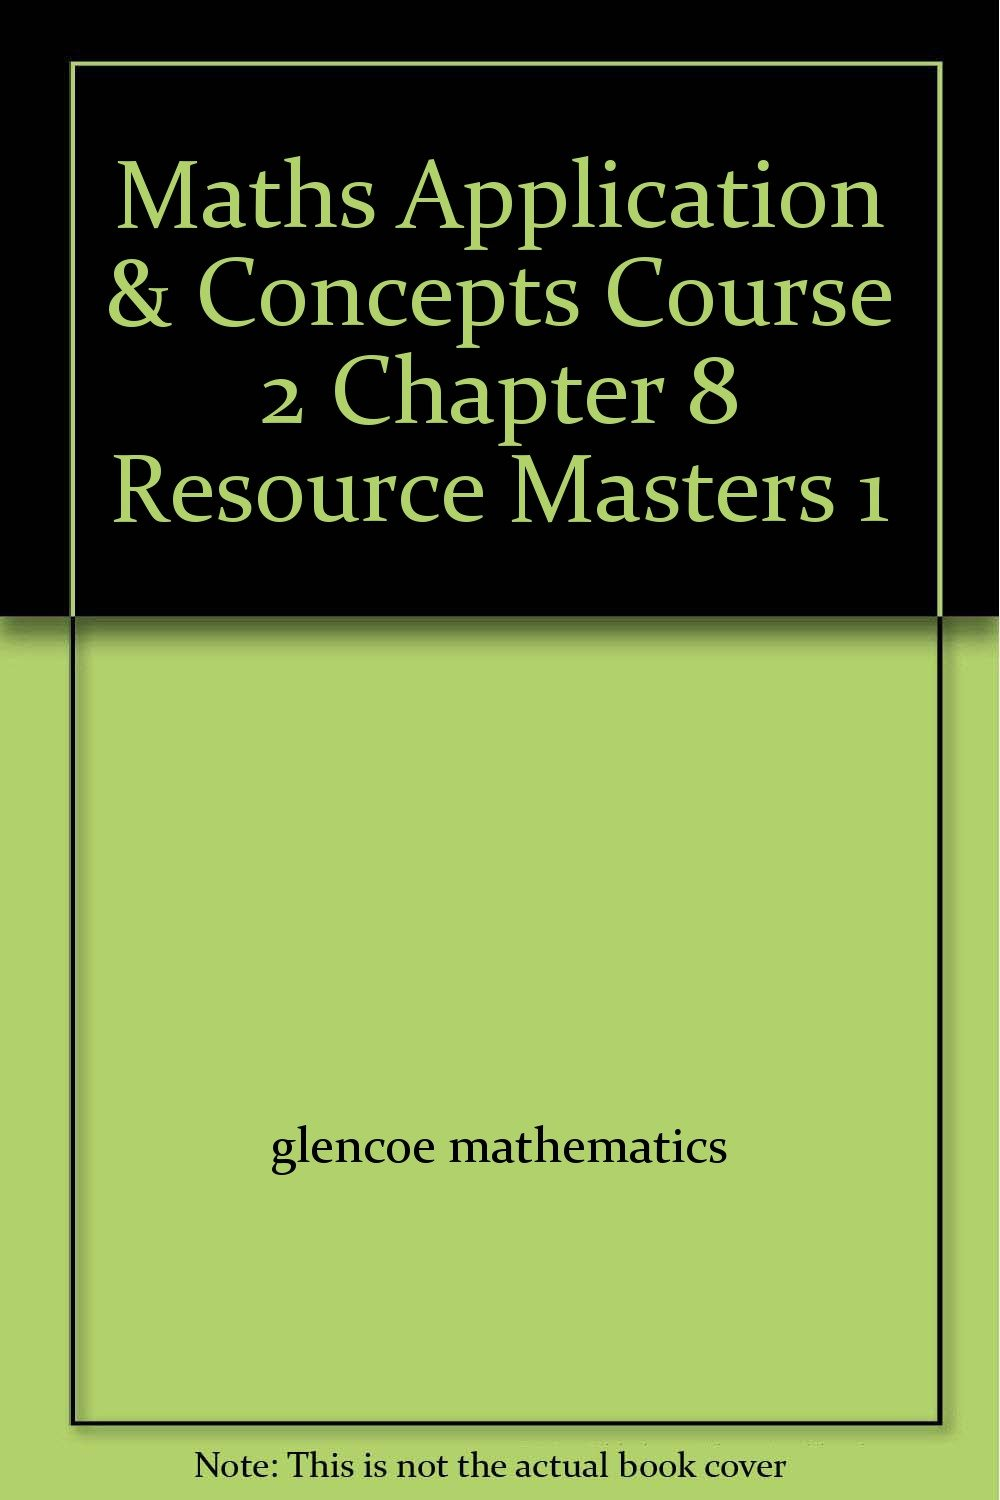 Maths Application & Concepts Course 2 Chapter 8 Resource